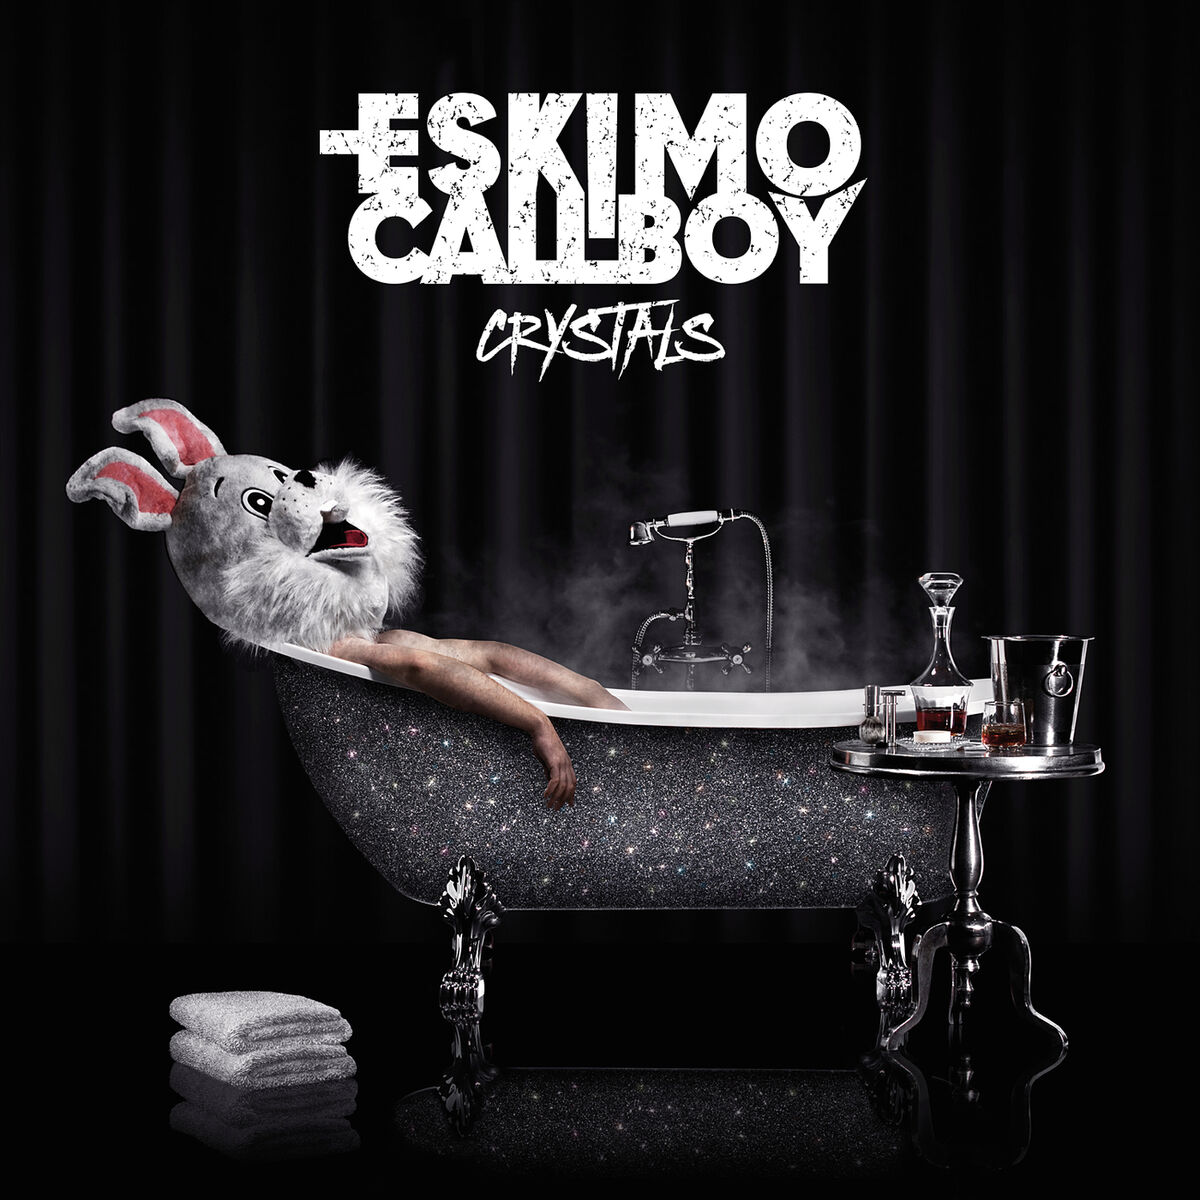 Eskimo Callboy - Crystals (Fanbox Limited Edition) (2015)